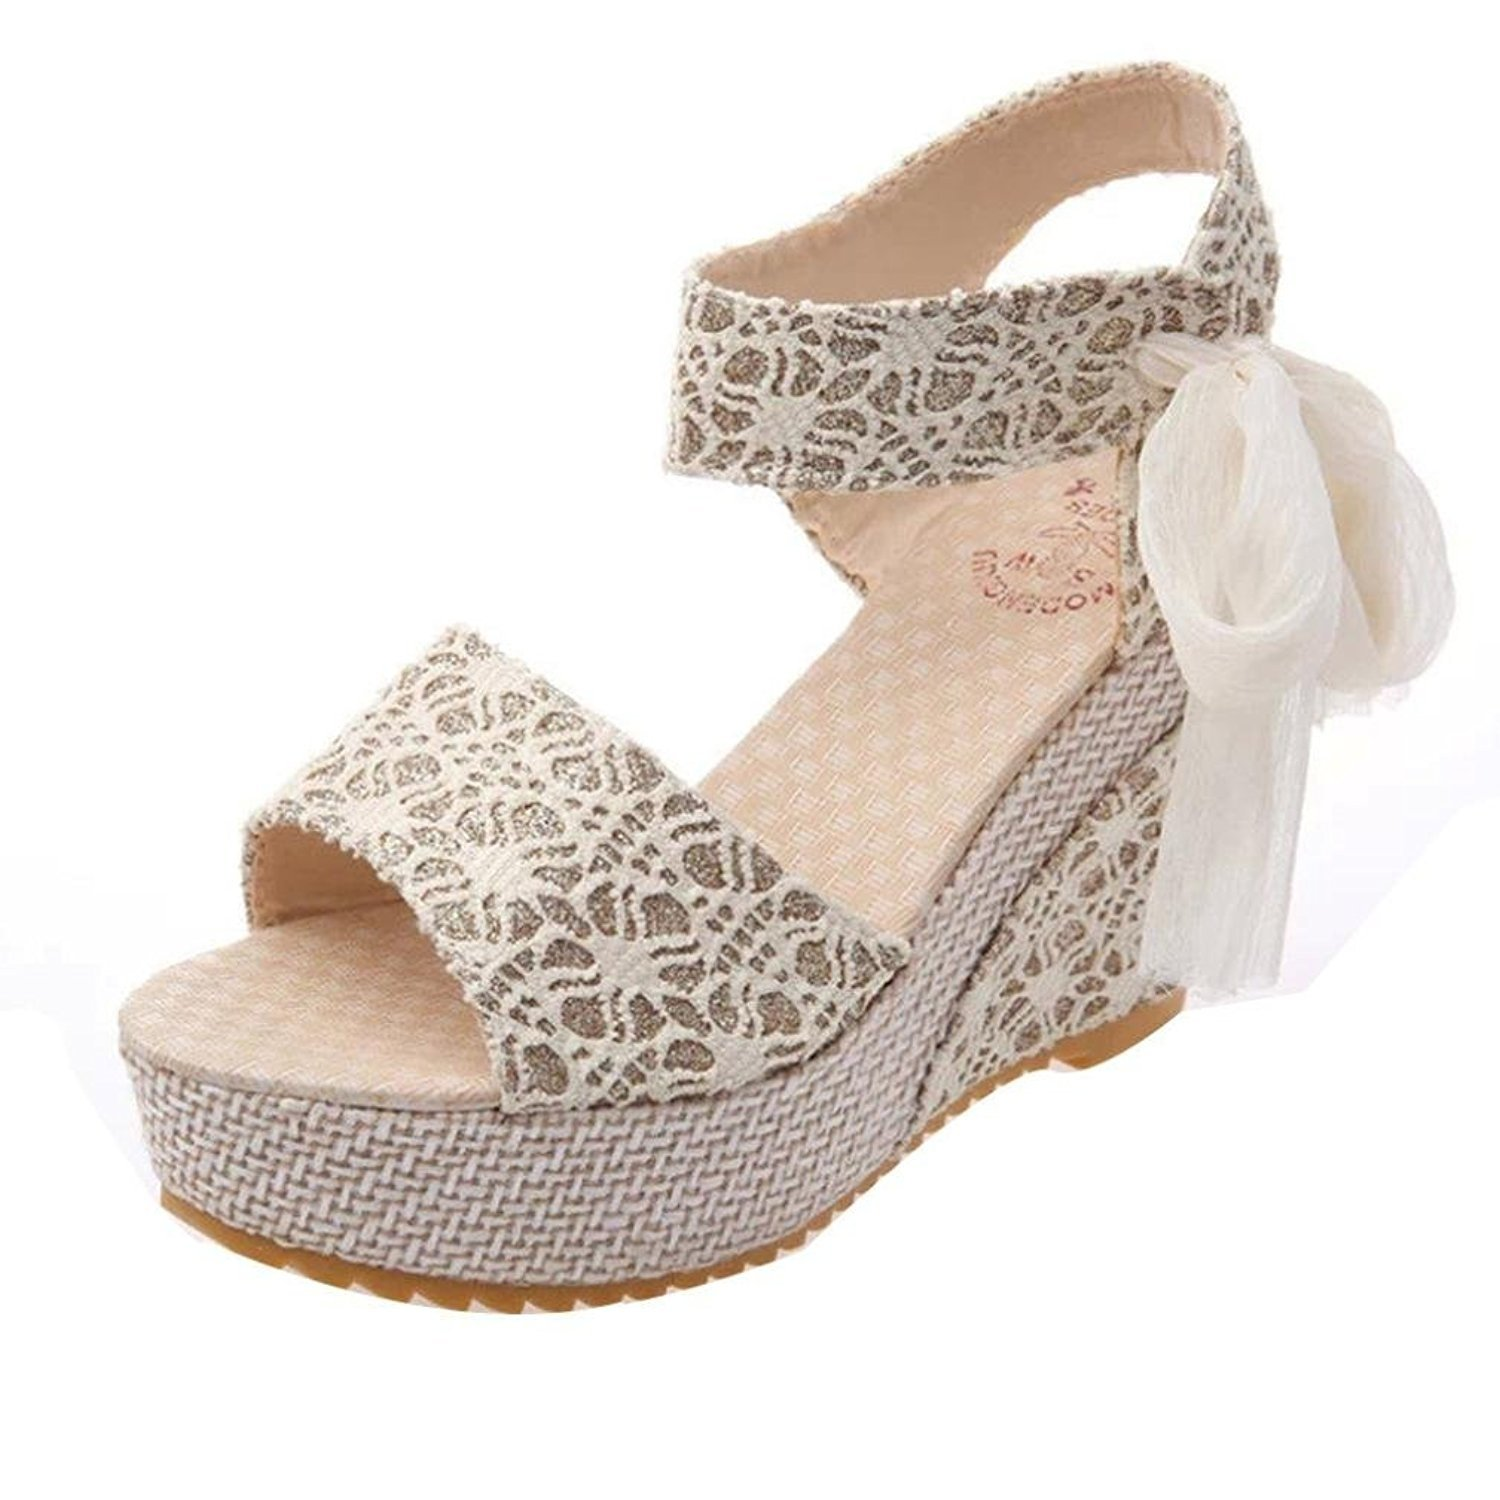 Dragon868 Women Fashion Summer Sandals, Ankle Strap Bowknot Decor Wedge Shoes